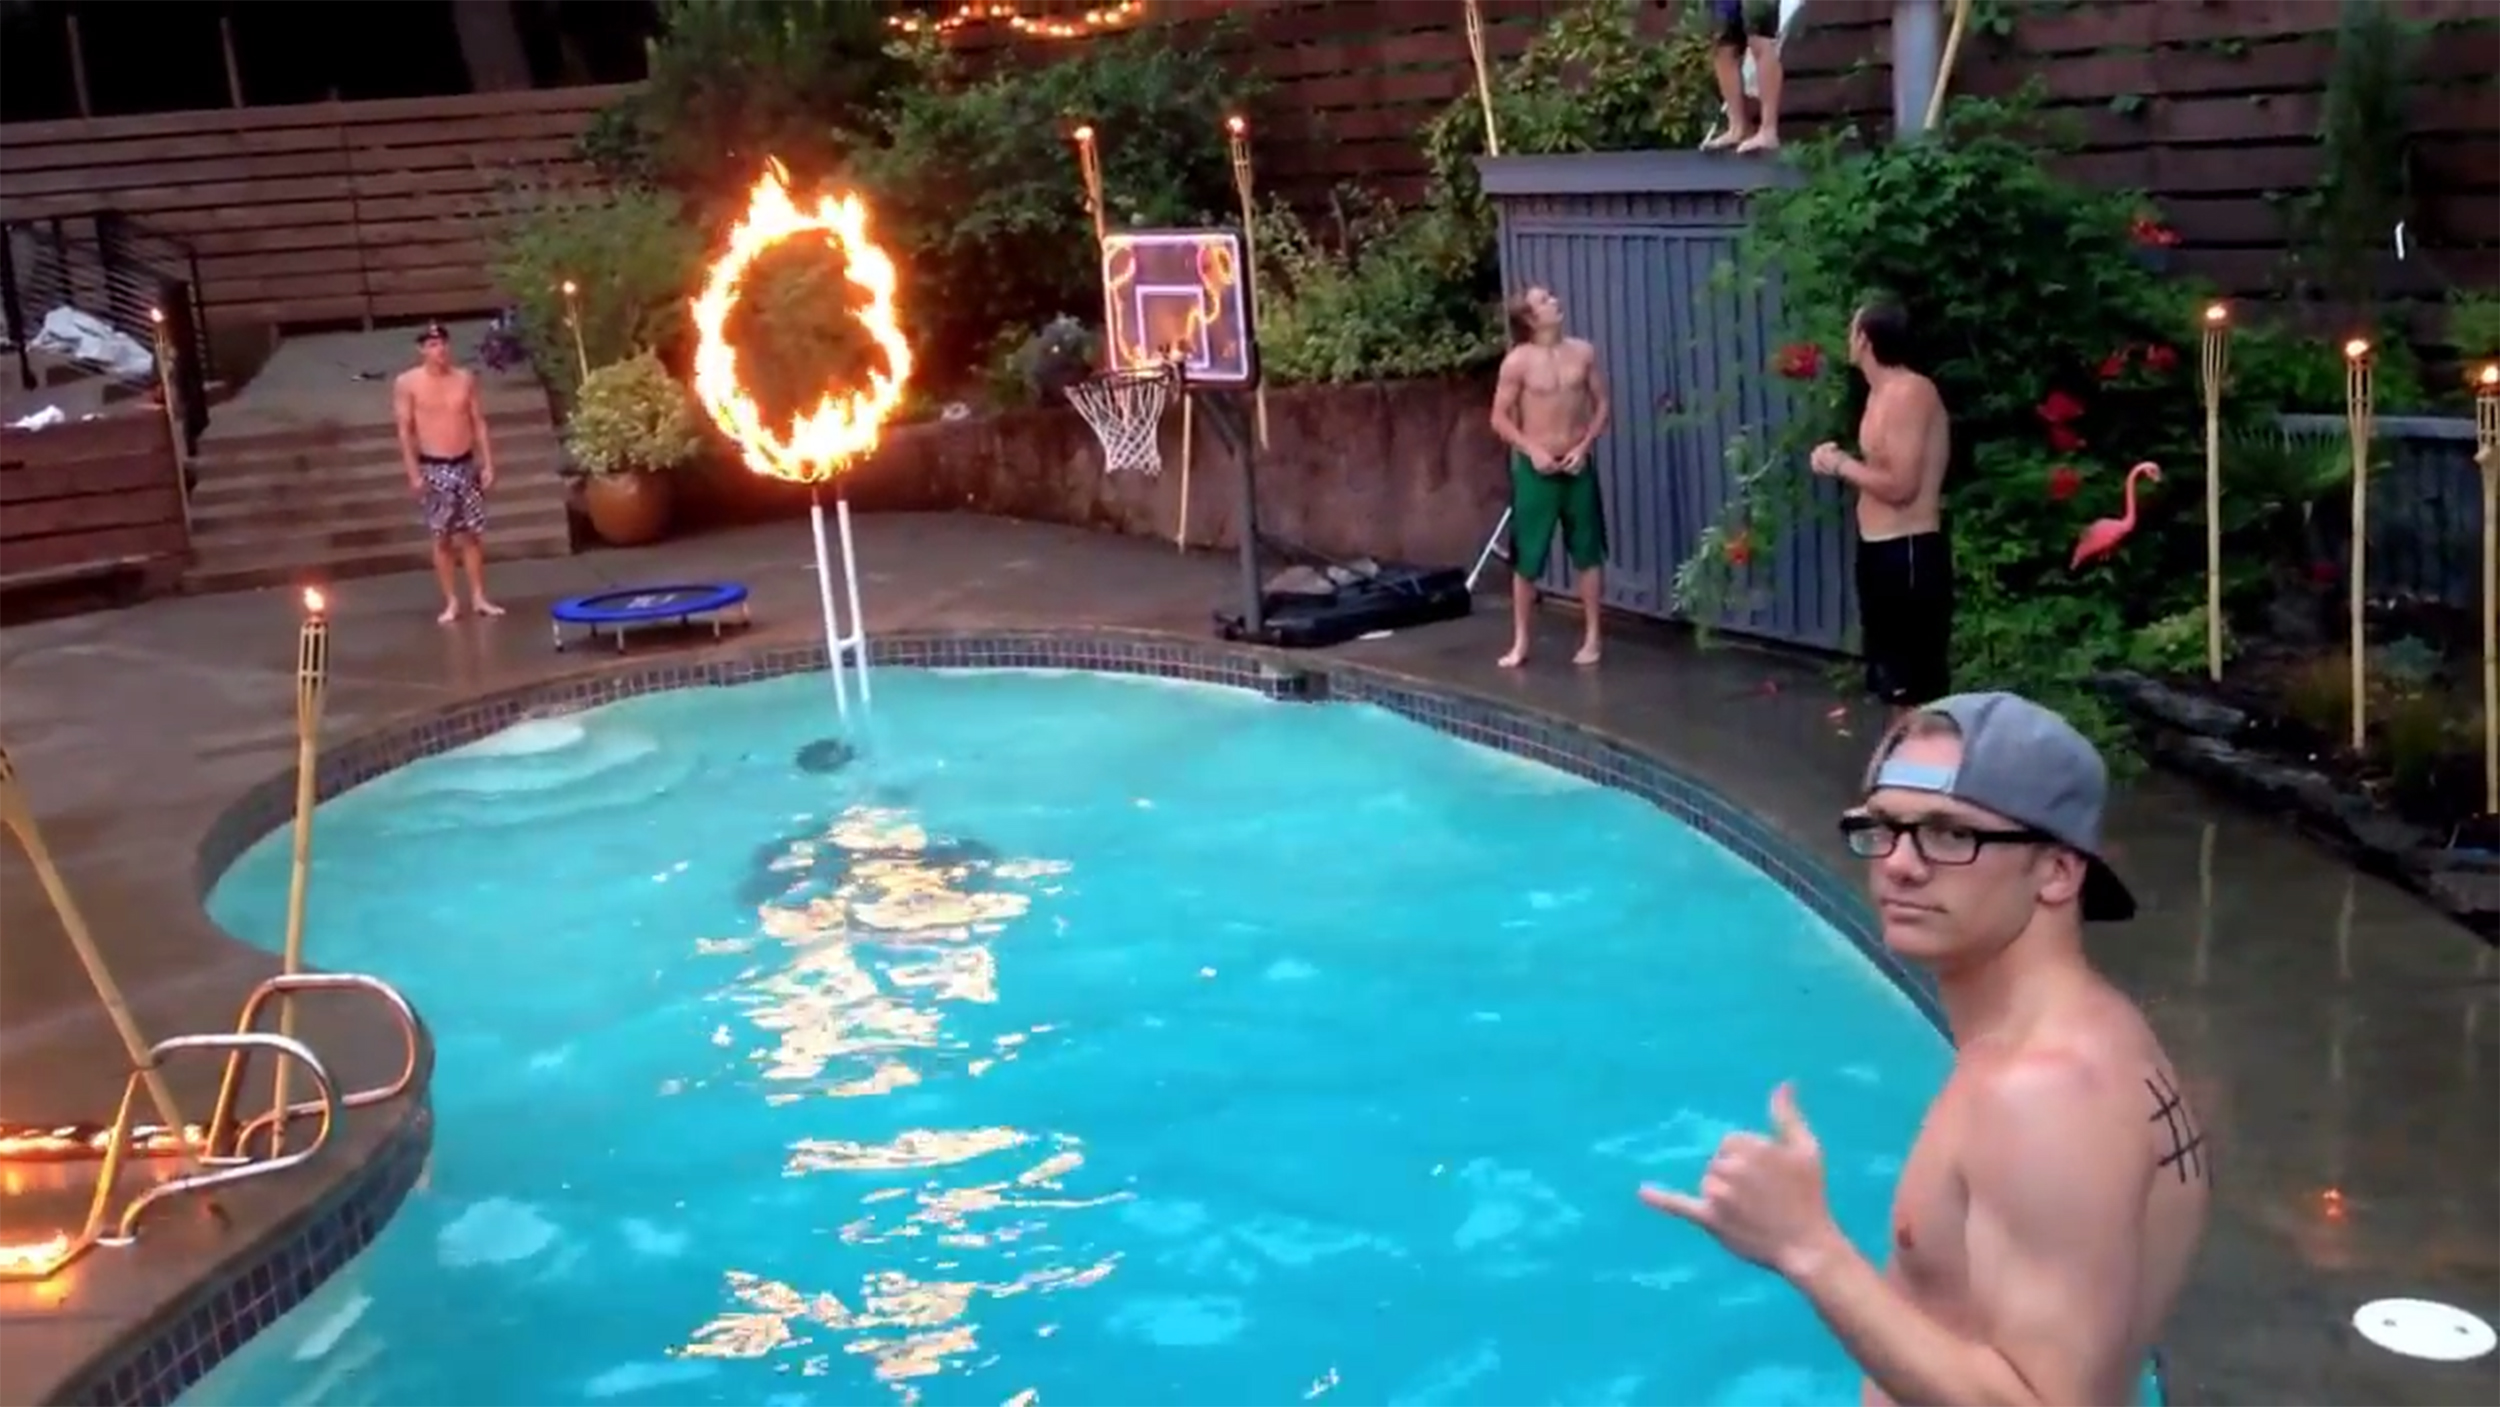 39 Jam Broz 39 Pool Dunk Involves Incredible Leap Through Fire